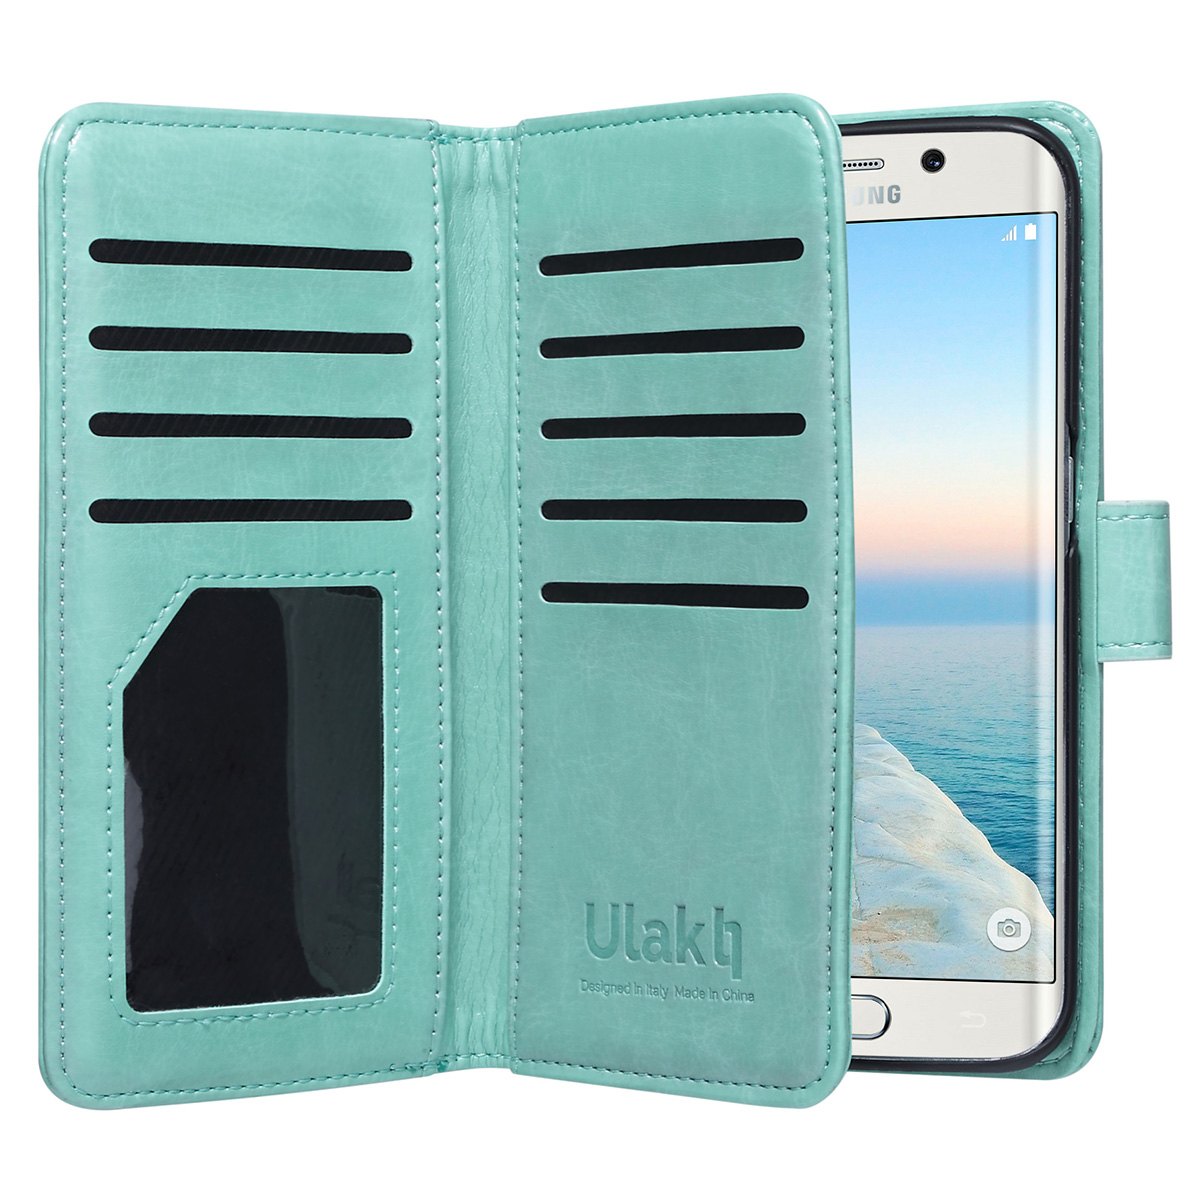 Galaxy S6 Edge Case, ULAK 9 cards Slot Slim PU Leather Stand Wallet Flip Protector Cover with ID & Credit Card Pockets for Samsung Galaxy S6 Edge